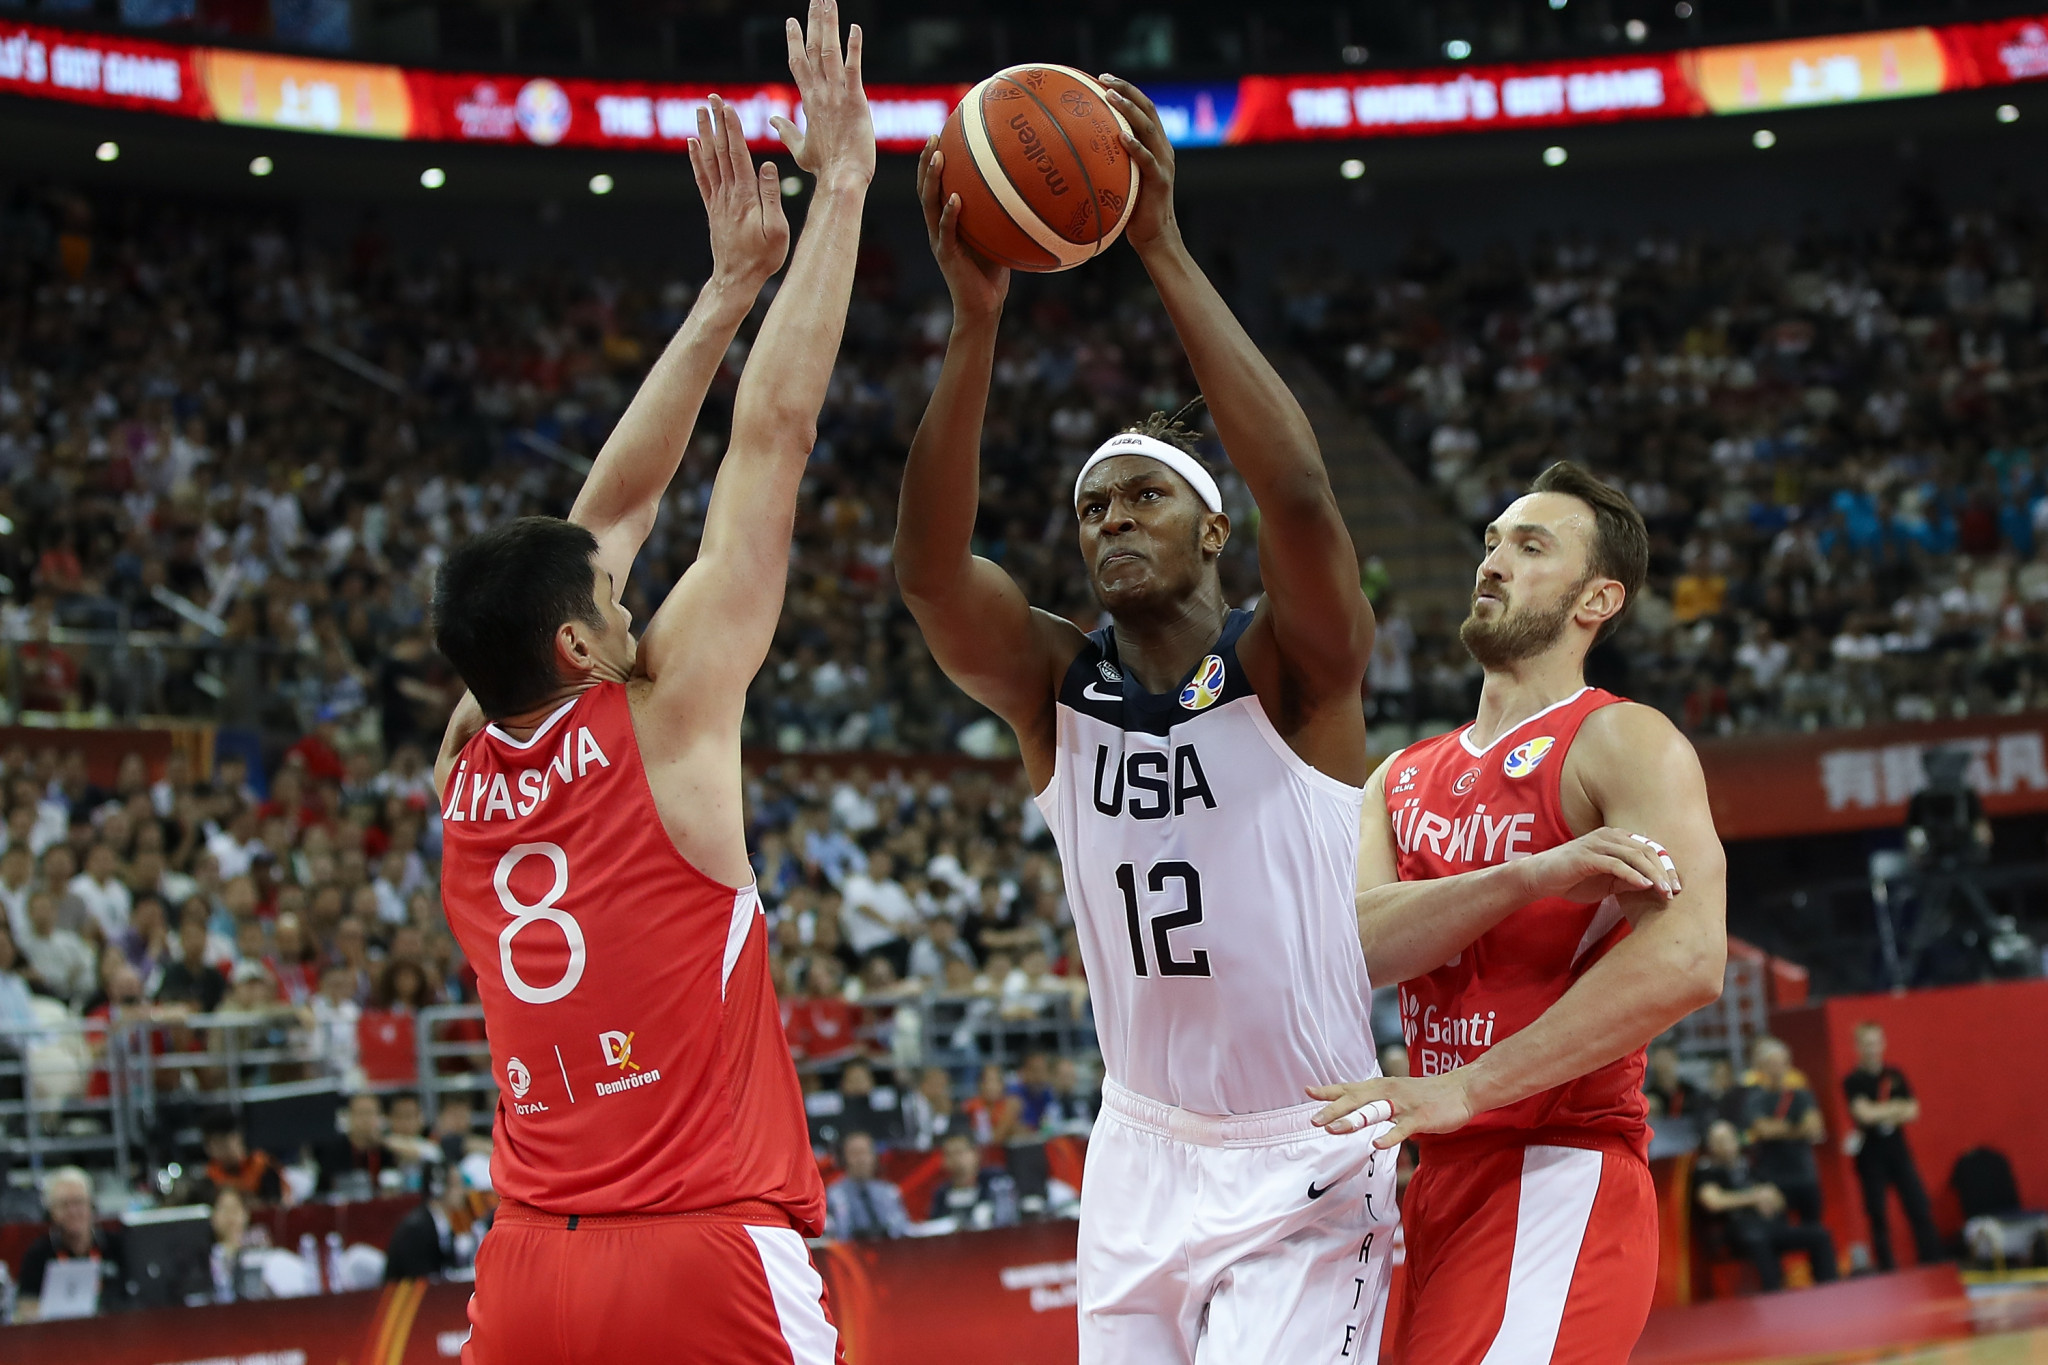 Holders United States edge Turkey in thriller at FIBA World Cup